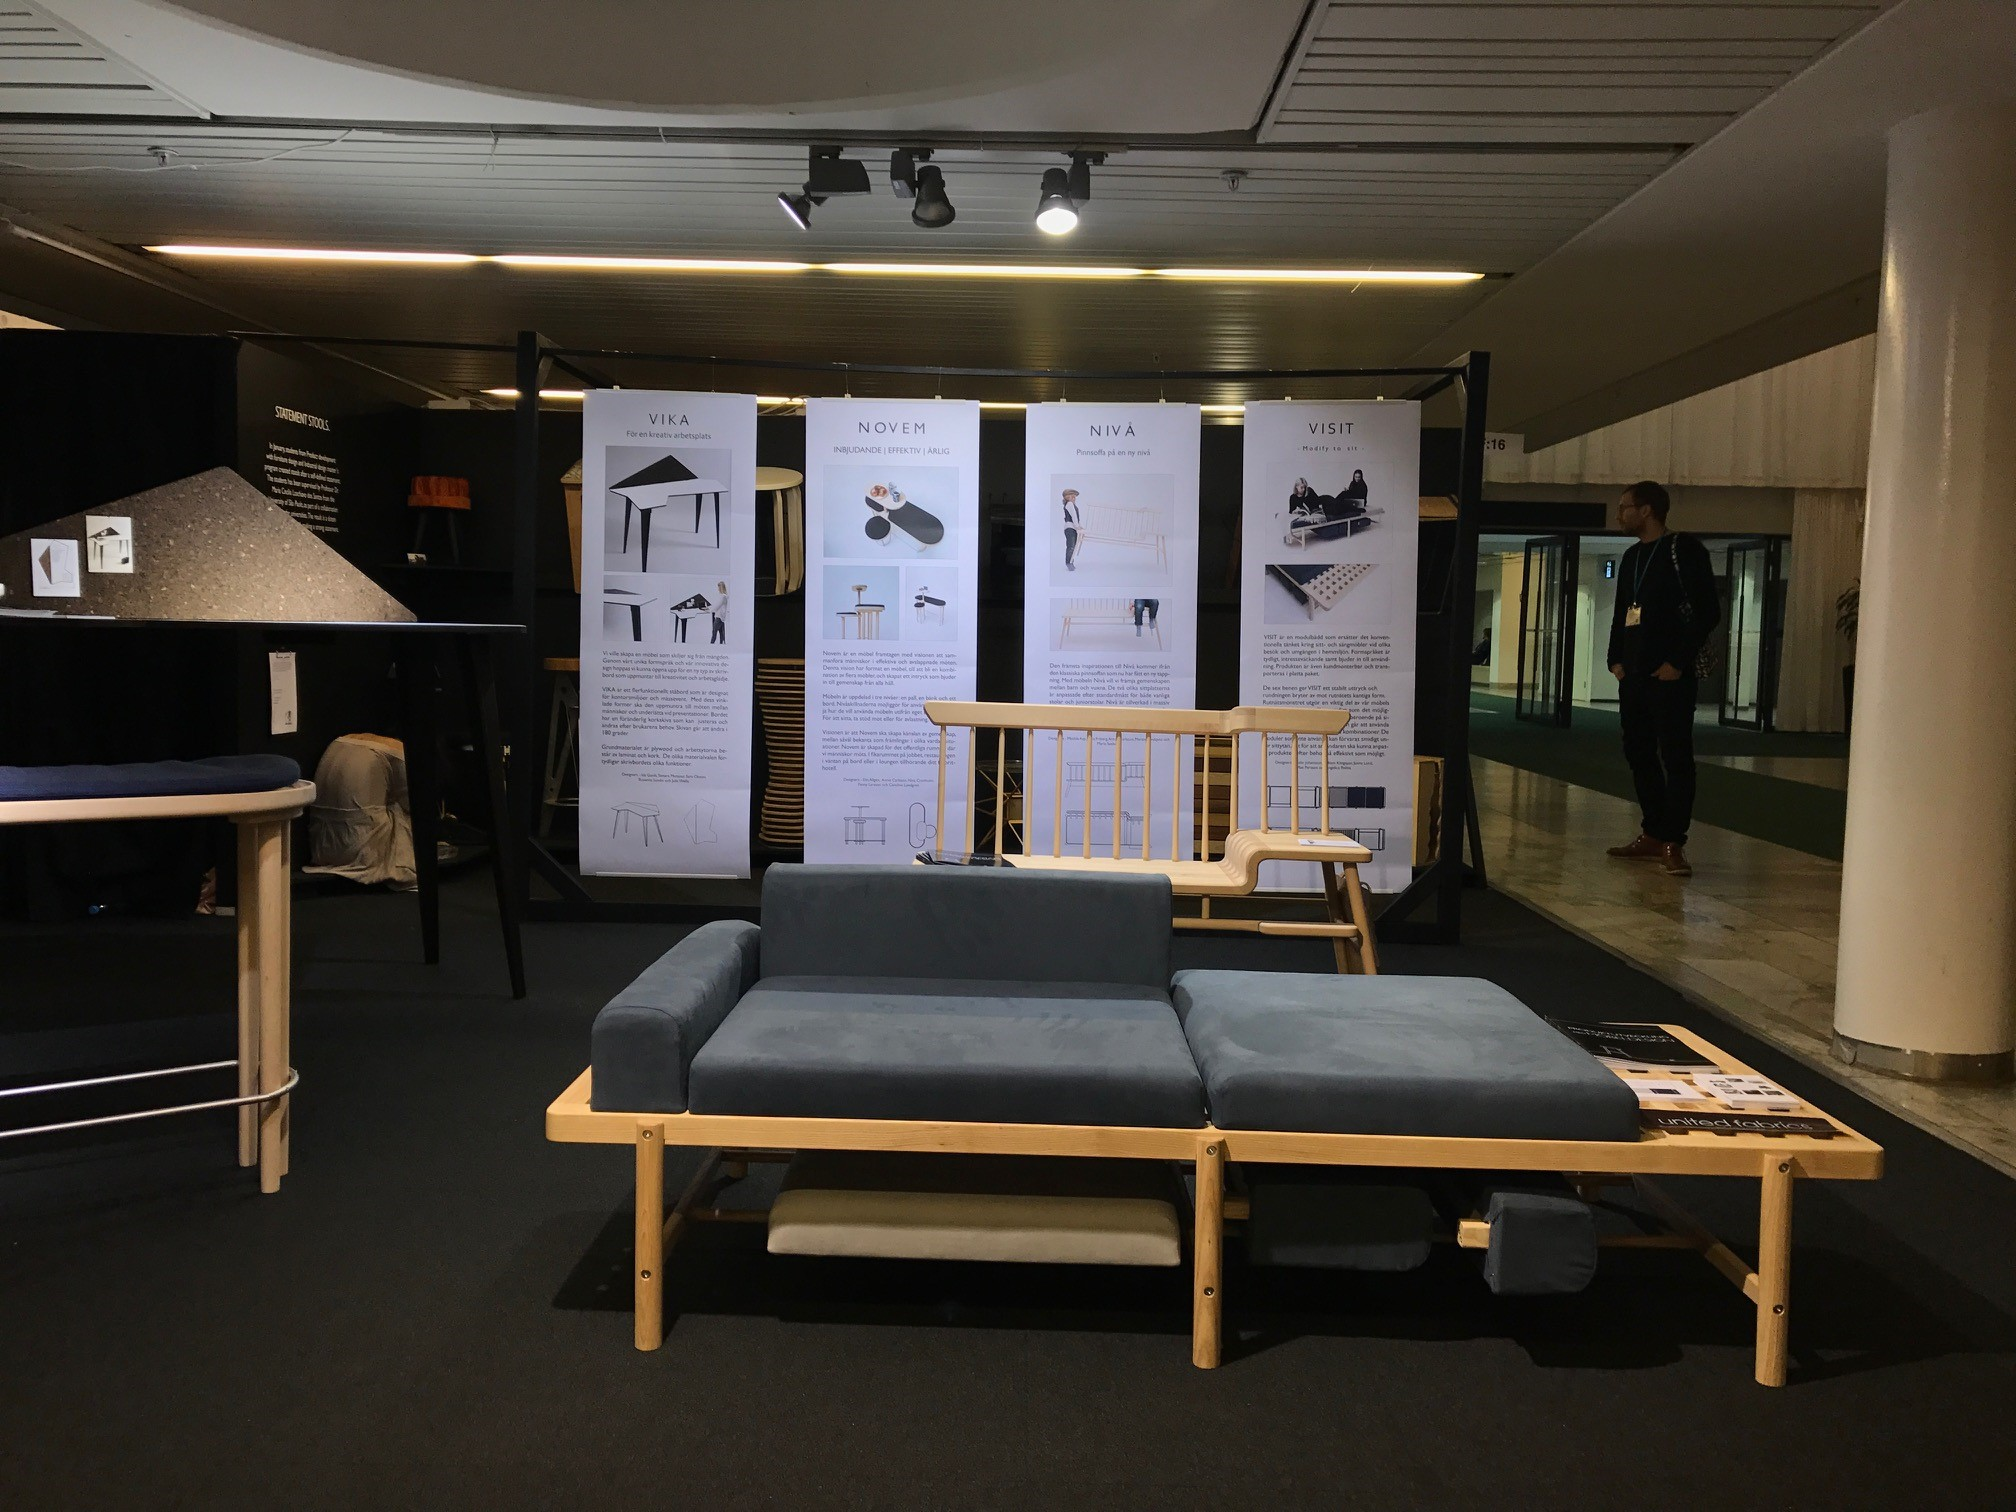 The Students Have Worked To Develop The Furniture They Are Now Exhibiting  During A Longer Project Period. Their Self Designed Furniture Has Been  Developed ...